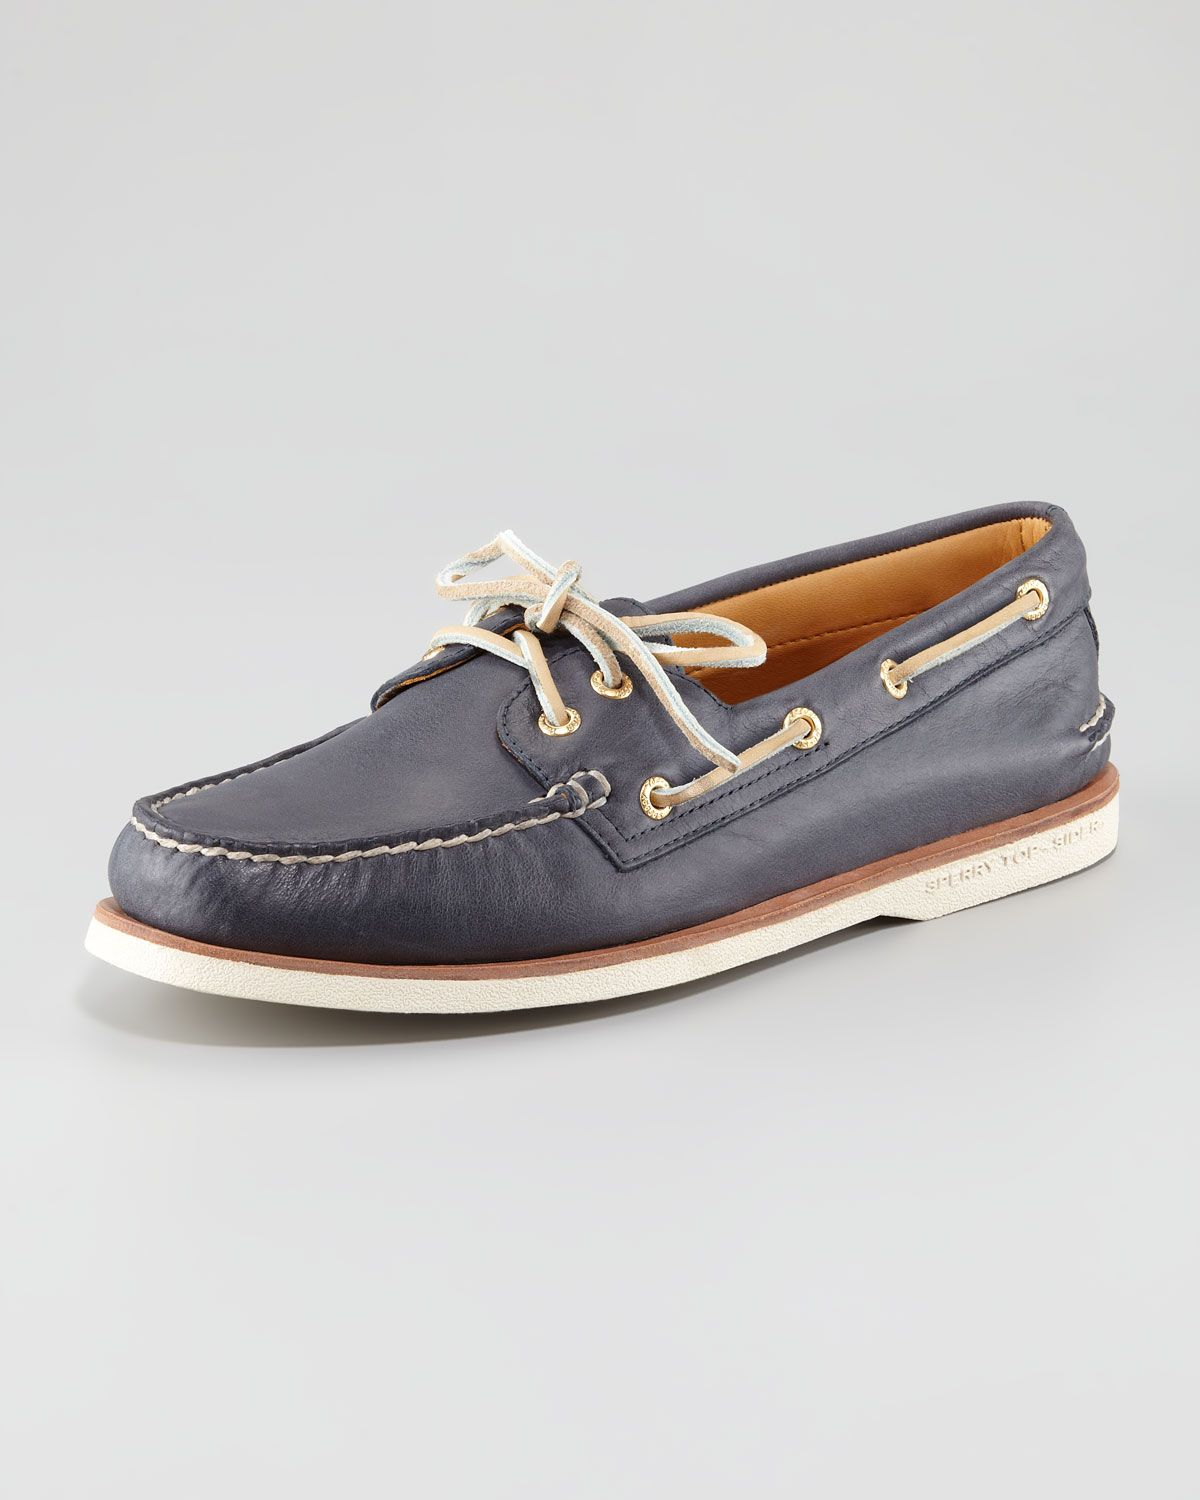 Gold Cup Authentic Original Boat Shoe, Navy by Sperry Top-Sider at Neiman  Marcus.